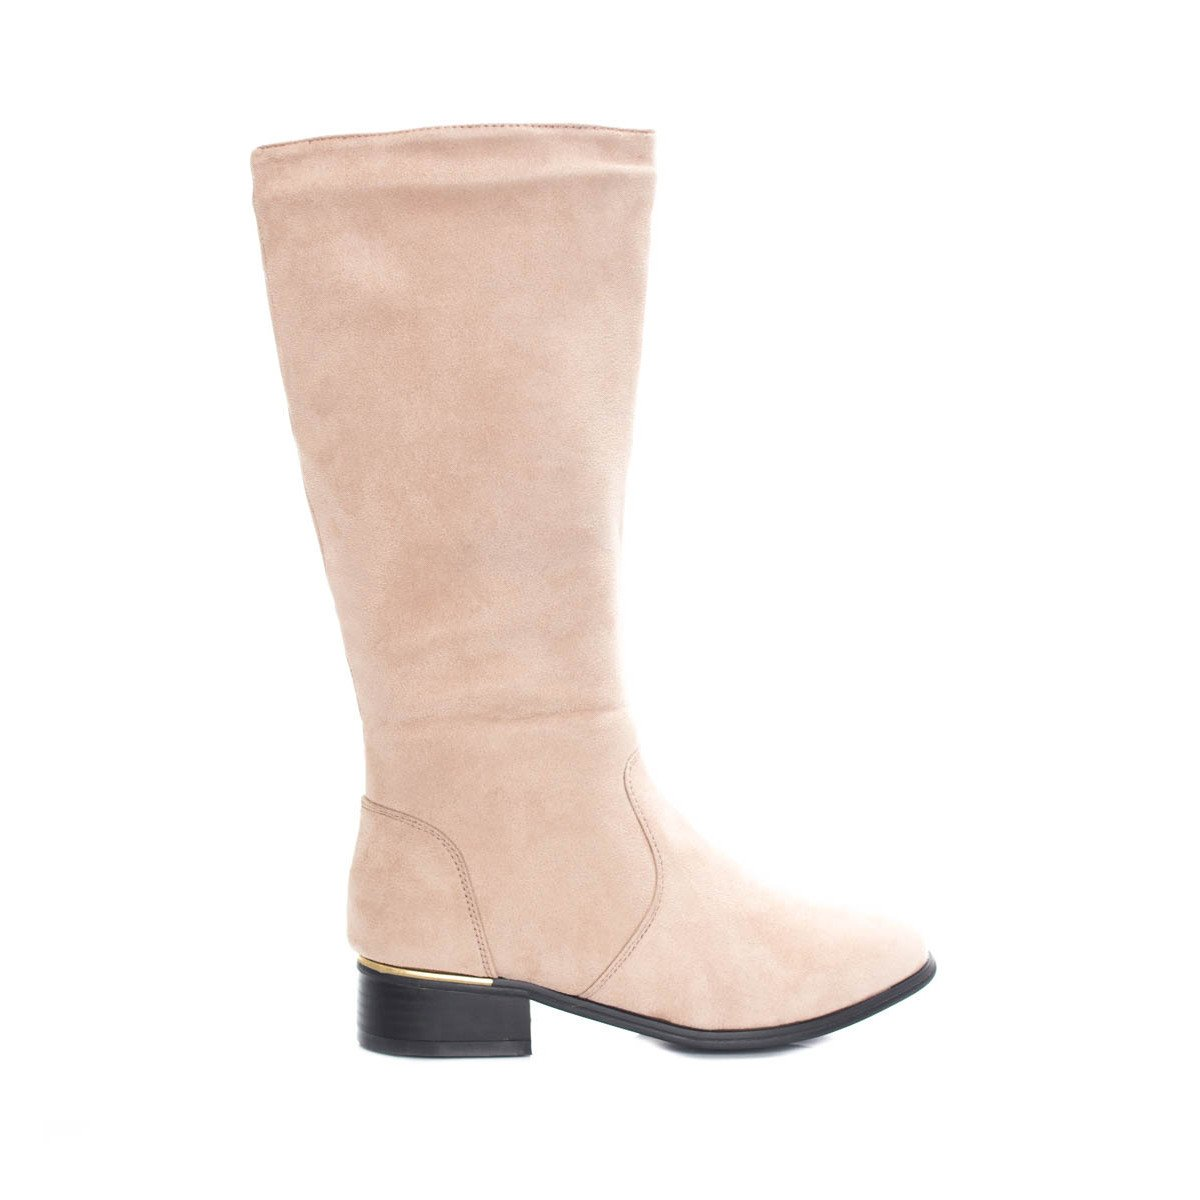 Soho Shoes Women's Knee High Wide Leg Faux Suede Boots